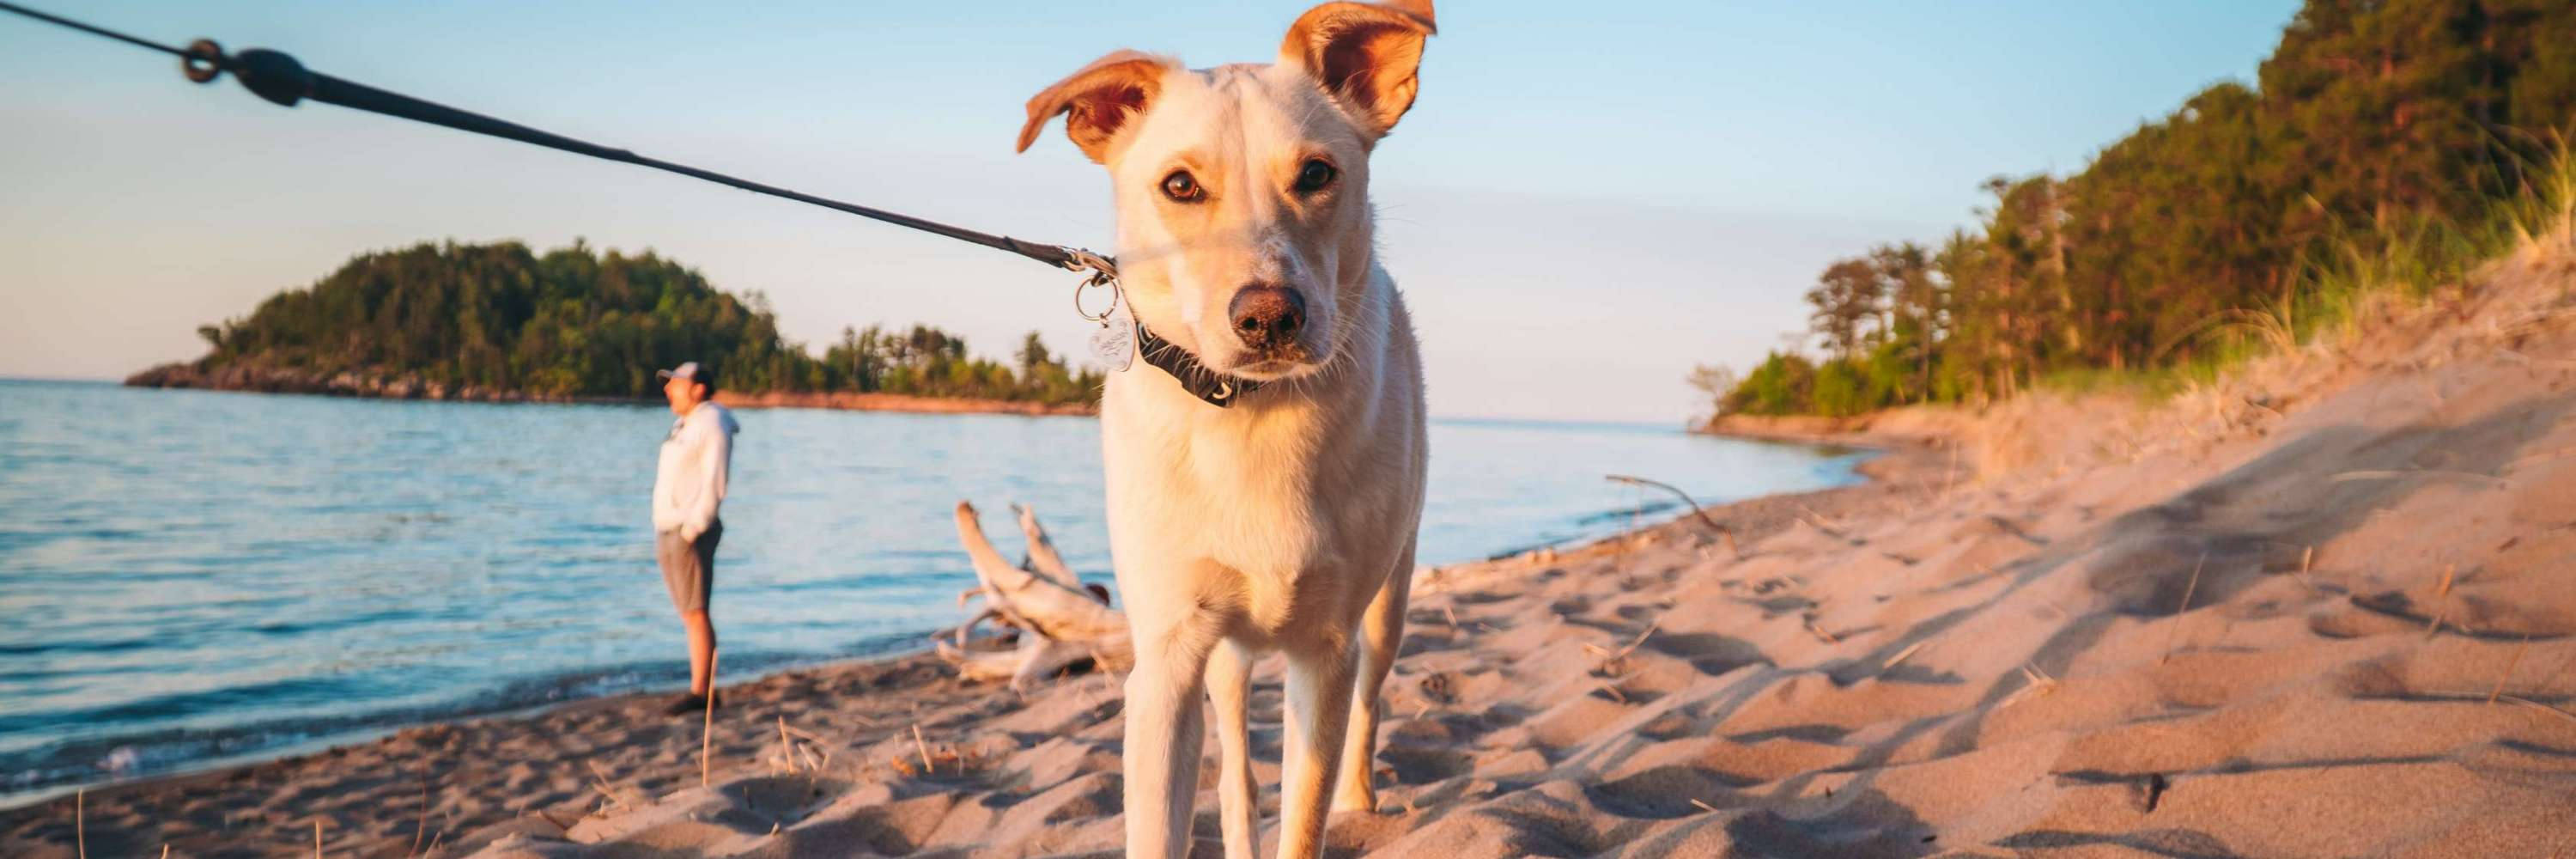 A dog on the beach at Little Presque Isle